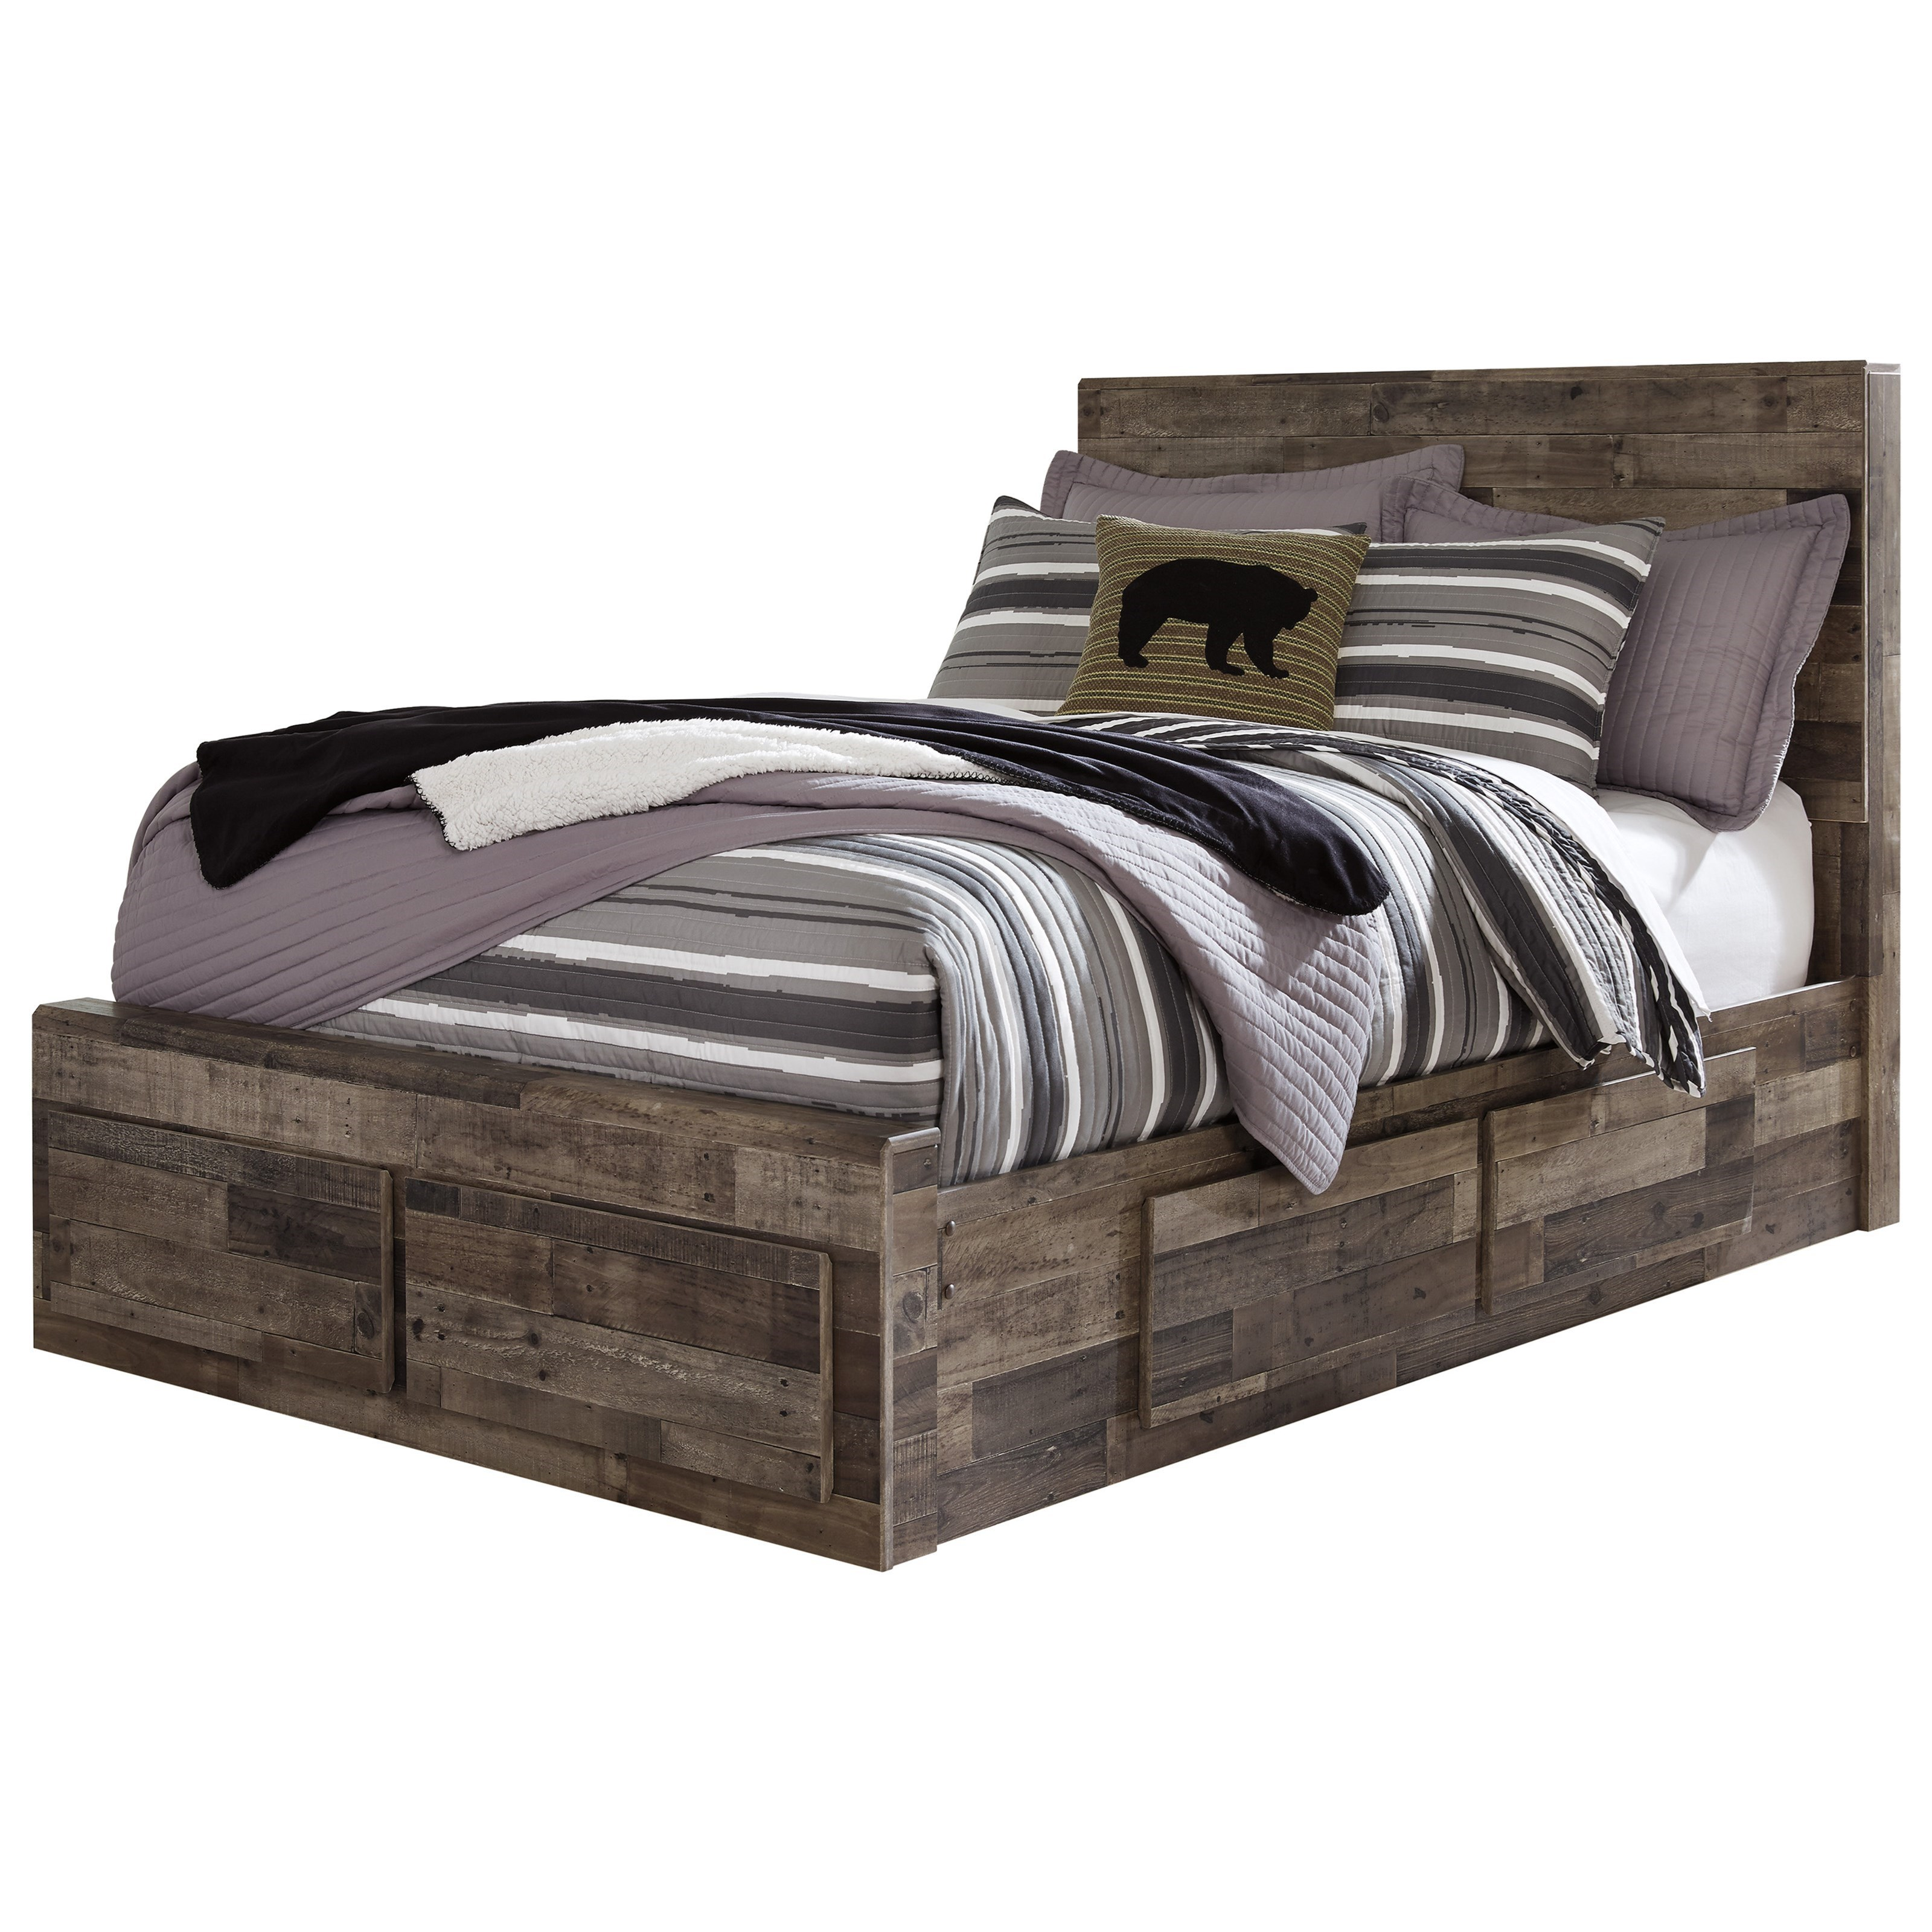 Derekson Full Storage Bed with 6 Drawers by Benchcraft at Northeast Factory Direct